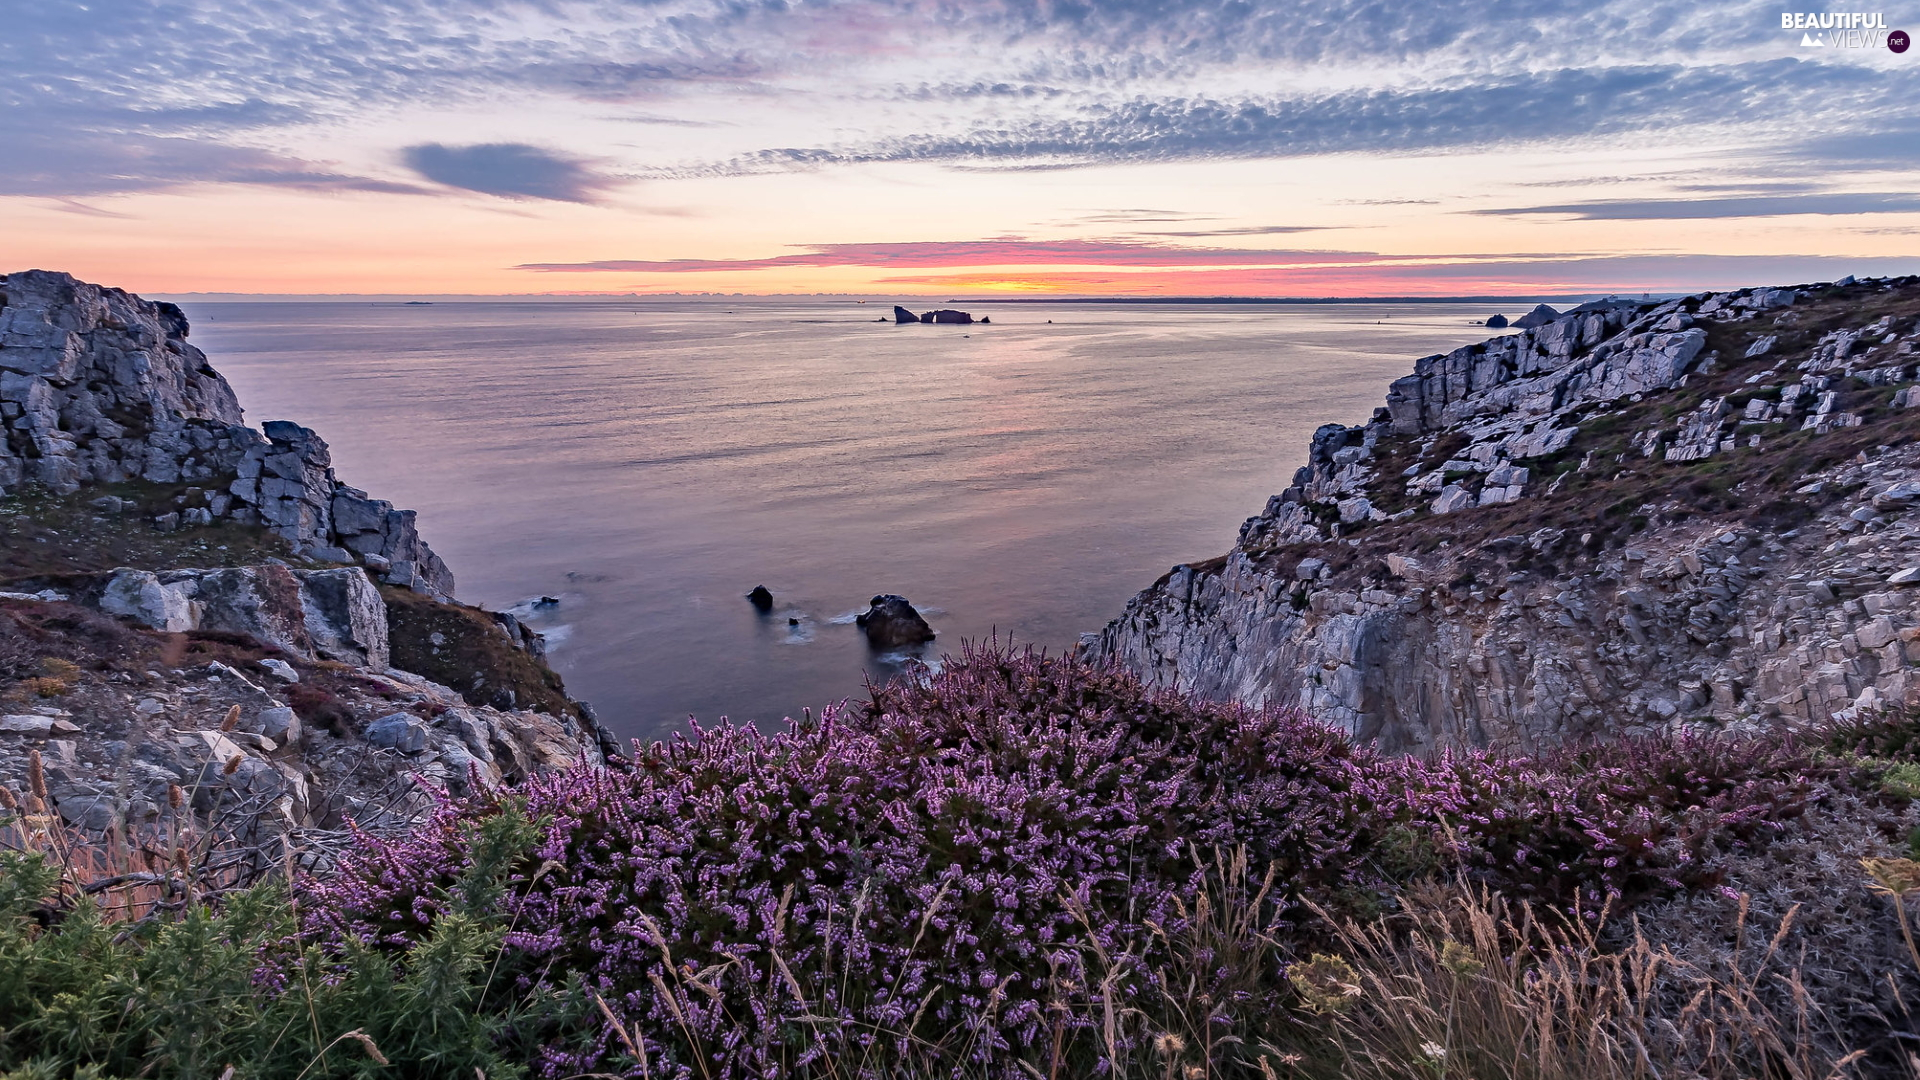 Great Sunsets, heathers, rocks, clouds, sea